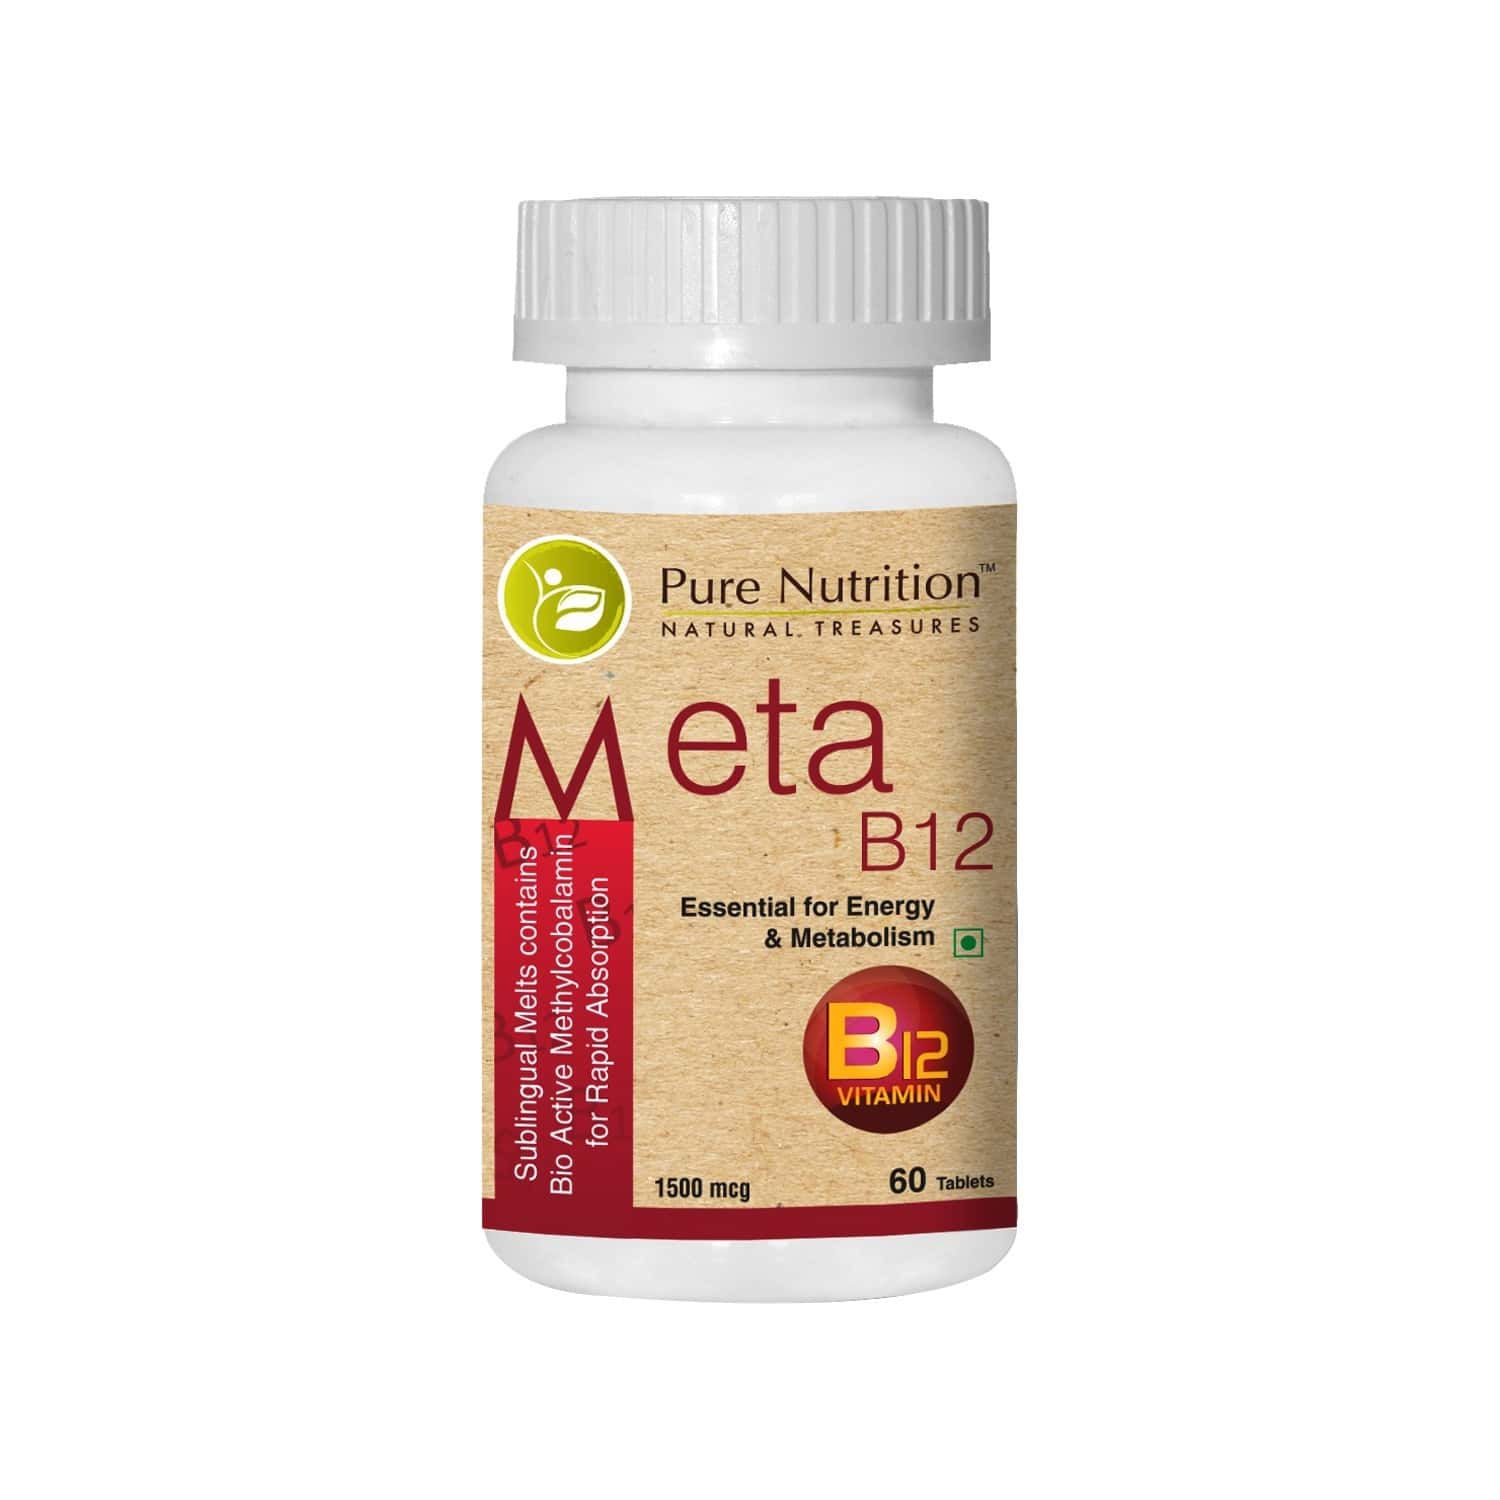 Pure Nutrition Meta B12 (vitamin B12) - 60 Tablets